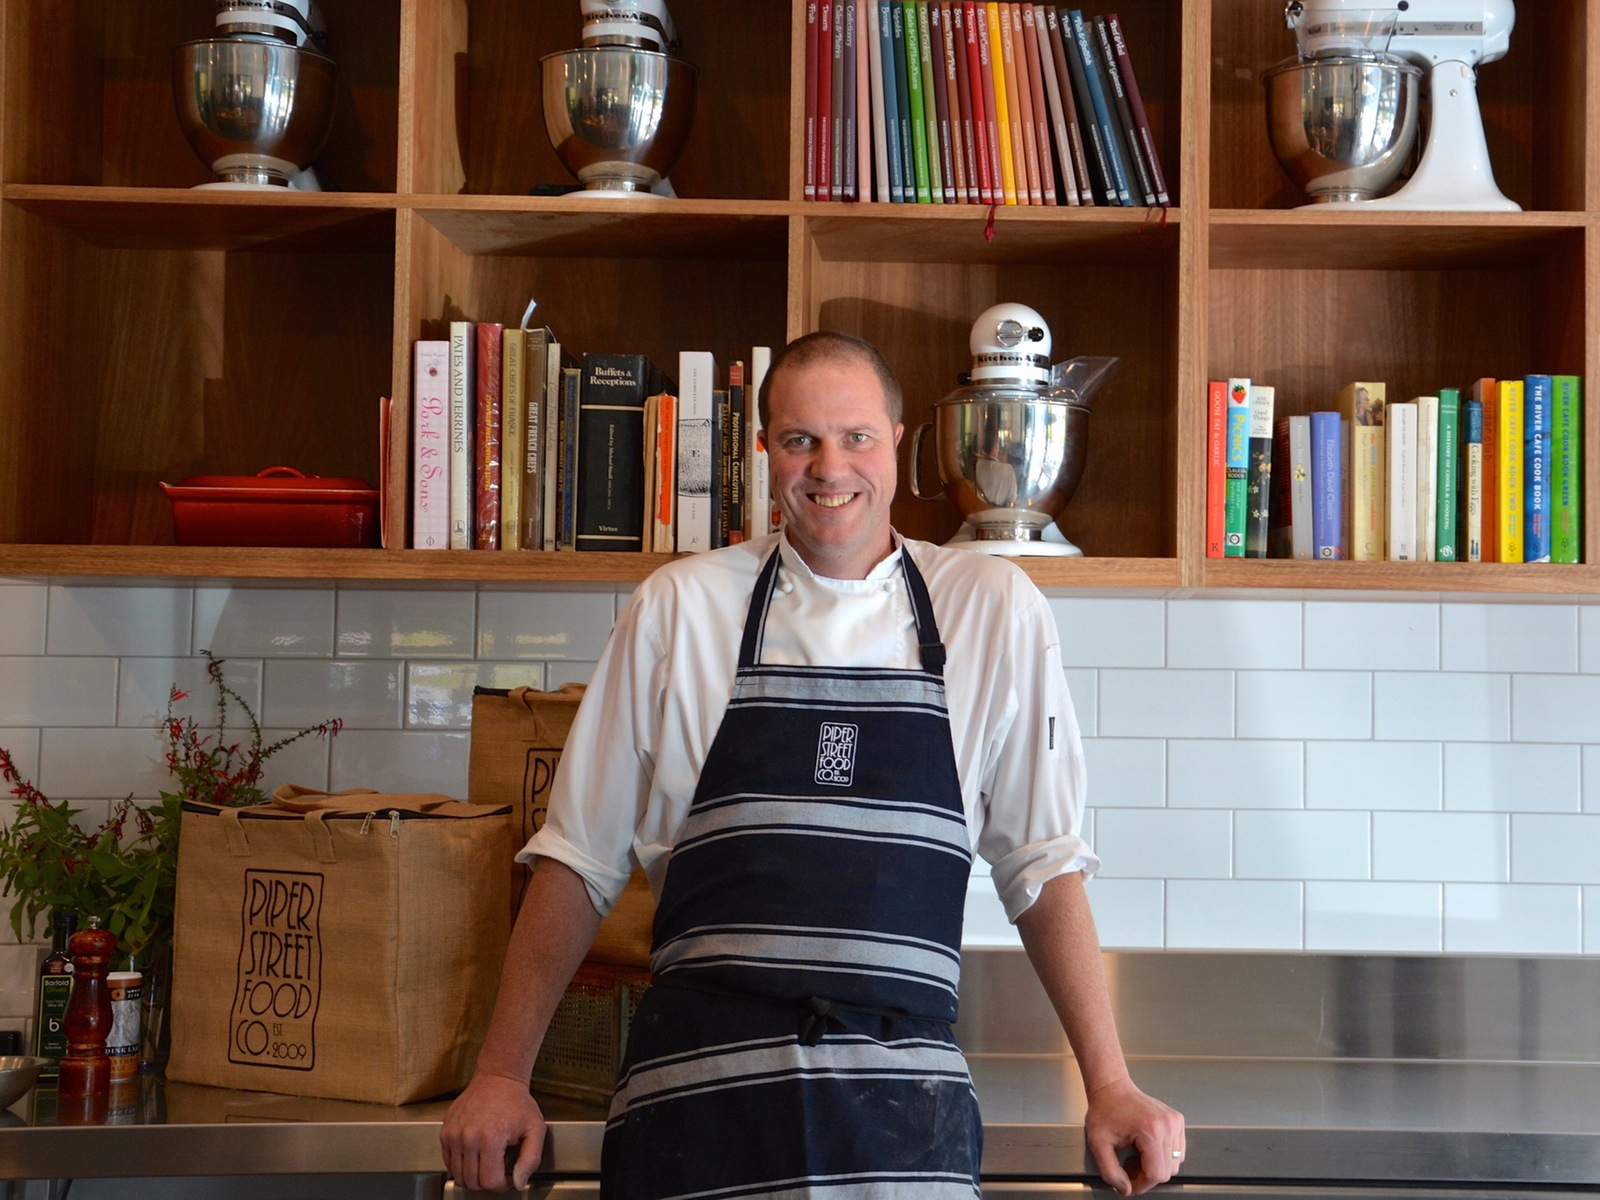 Head Chef and Owner - Damian Sandercock